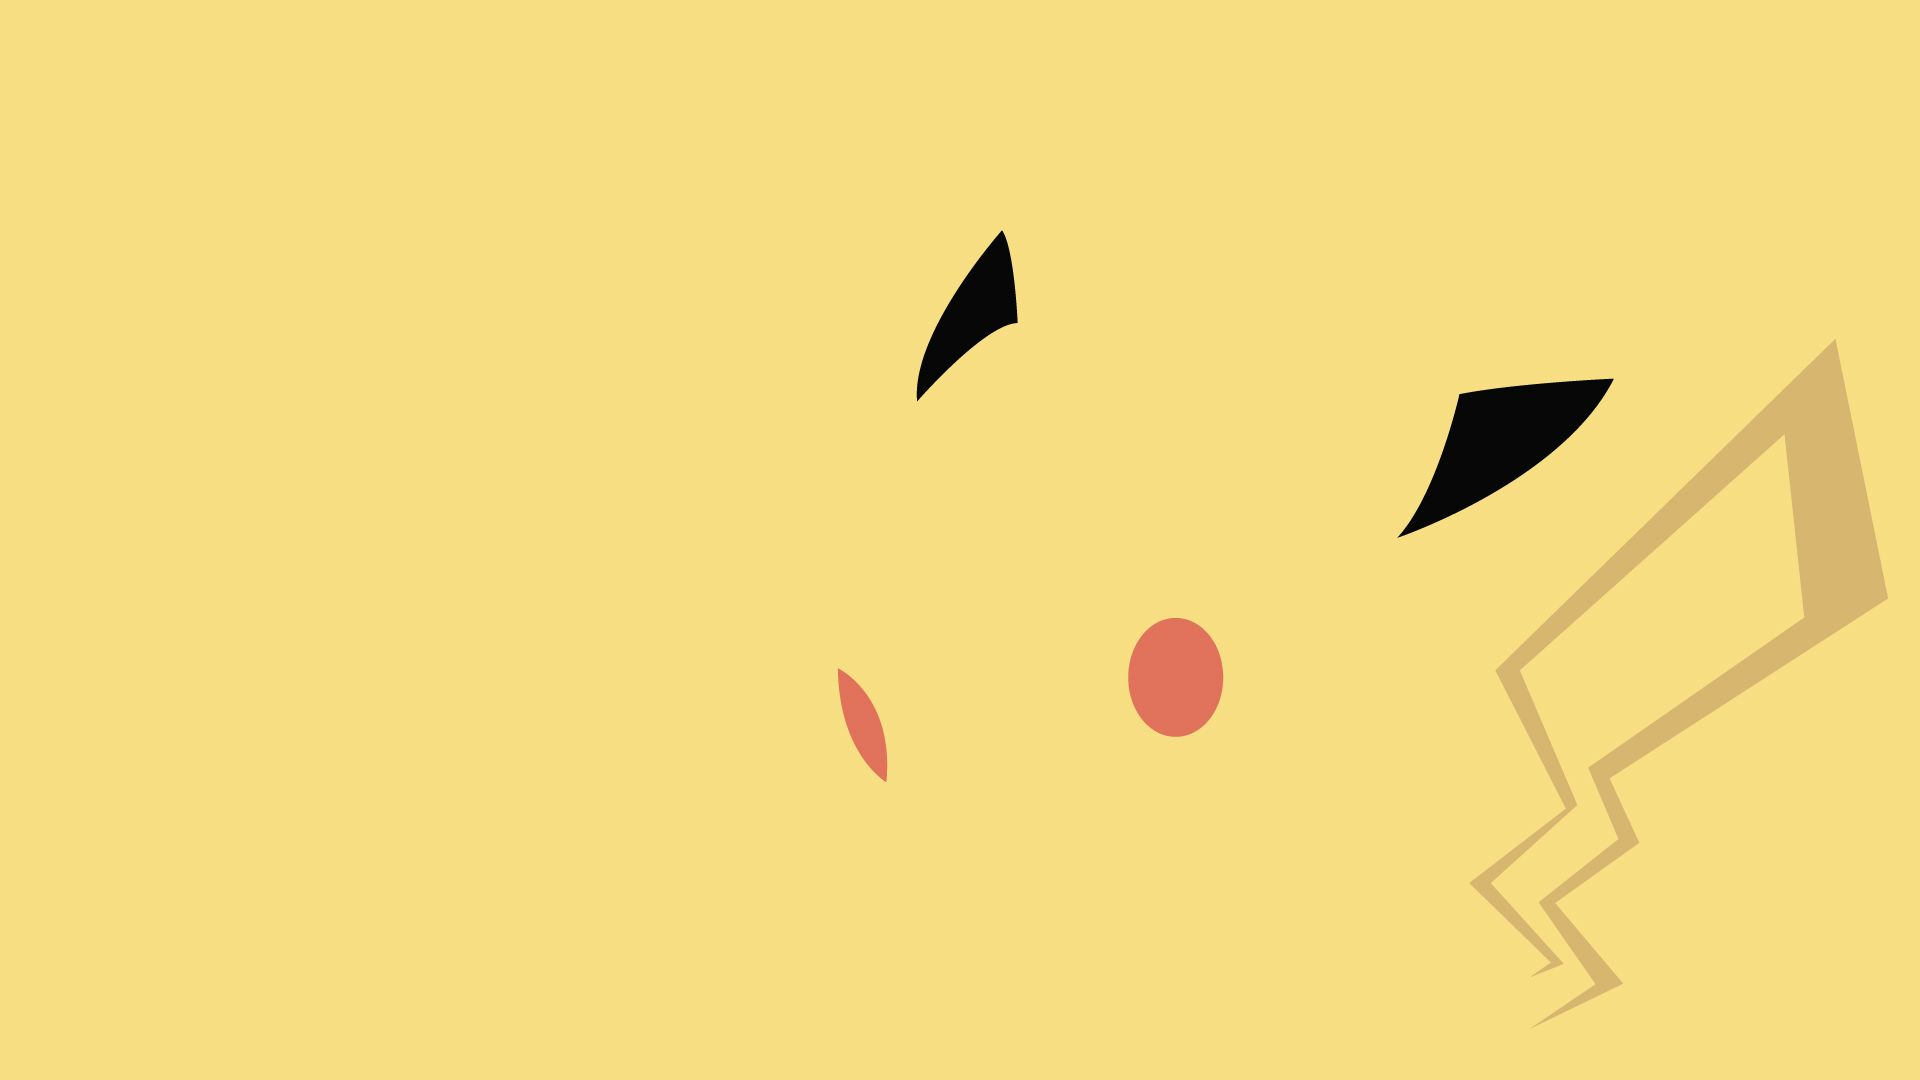 pokemon minimalistic pixelart hd - photo #20